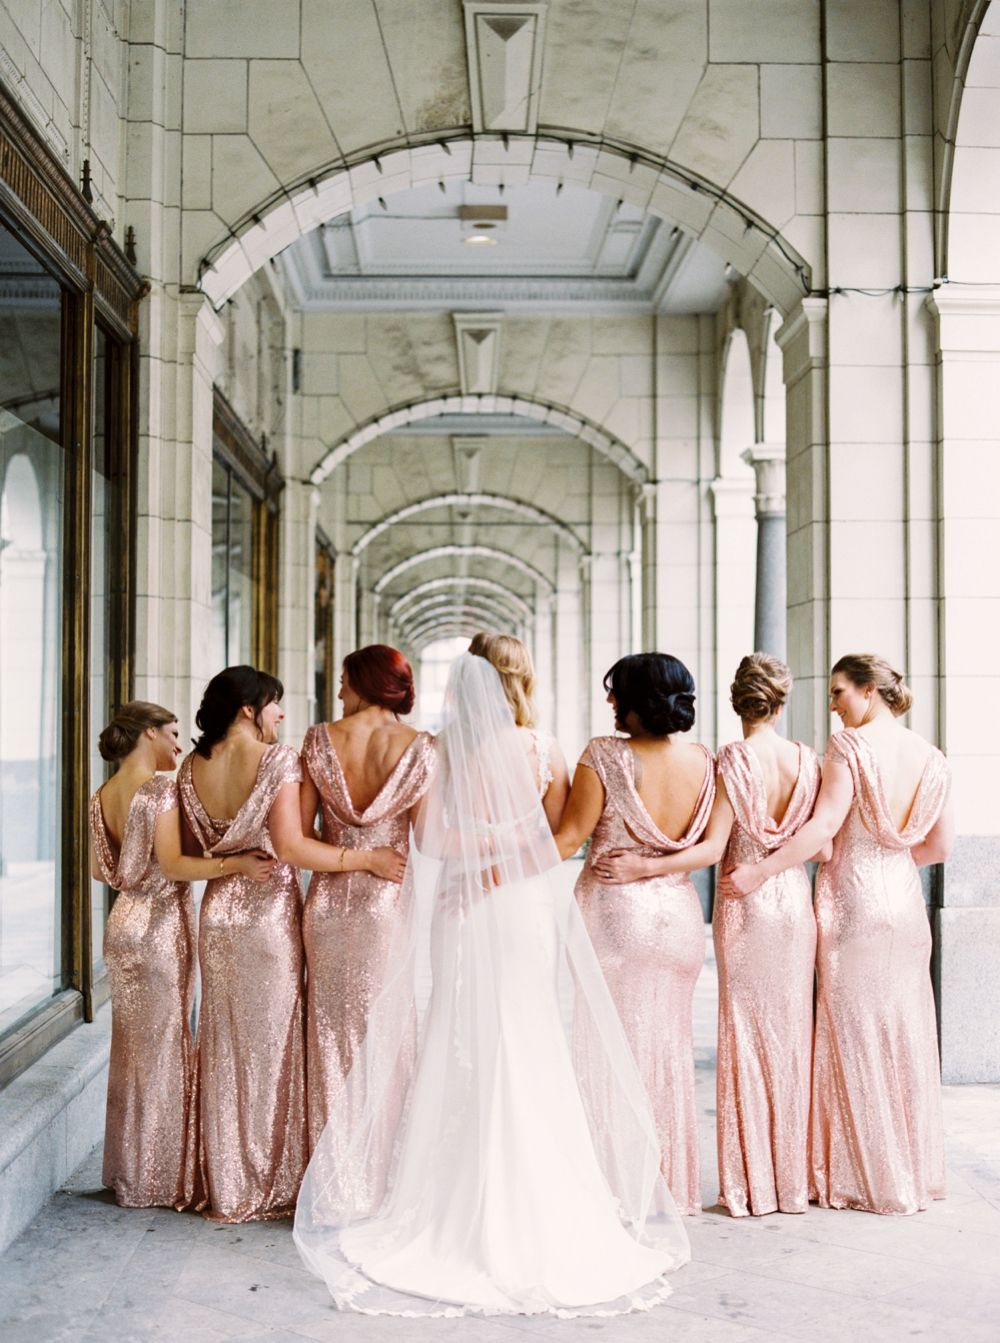 Rose gold sequin bridesmaids dresses calgary wedding rose gold sequin bridesmaids dresses calgary wedding photographers teatro wedding new years eve ombrellifo Image collections